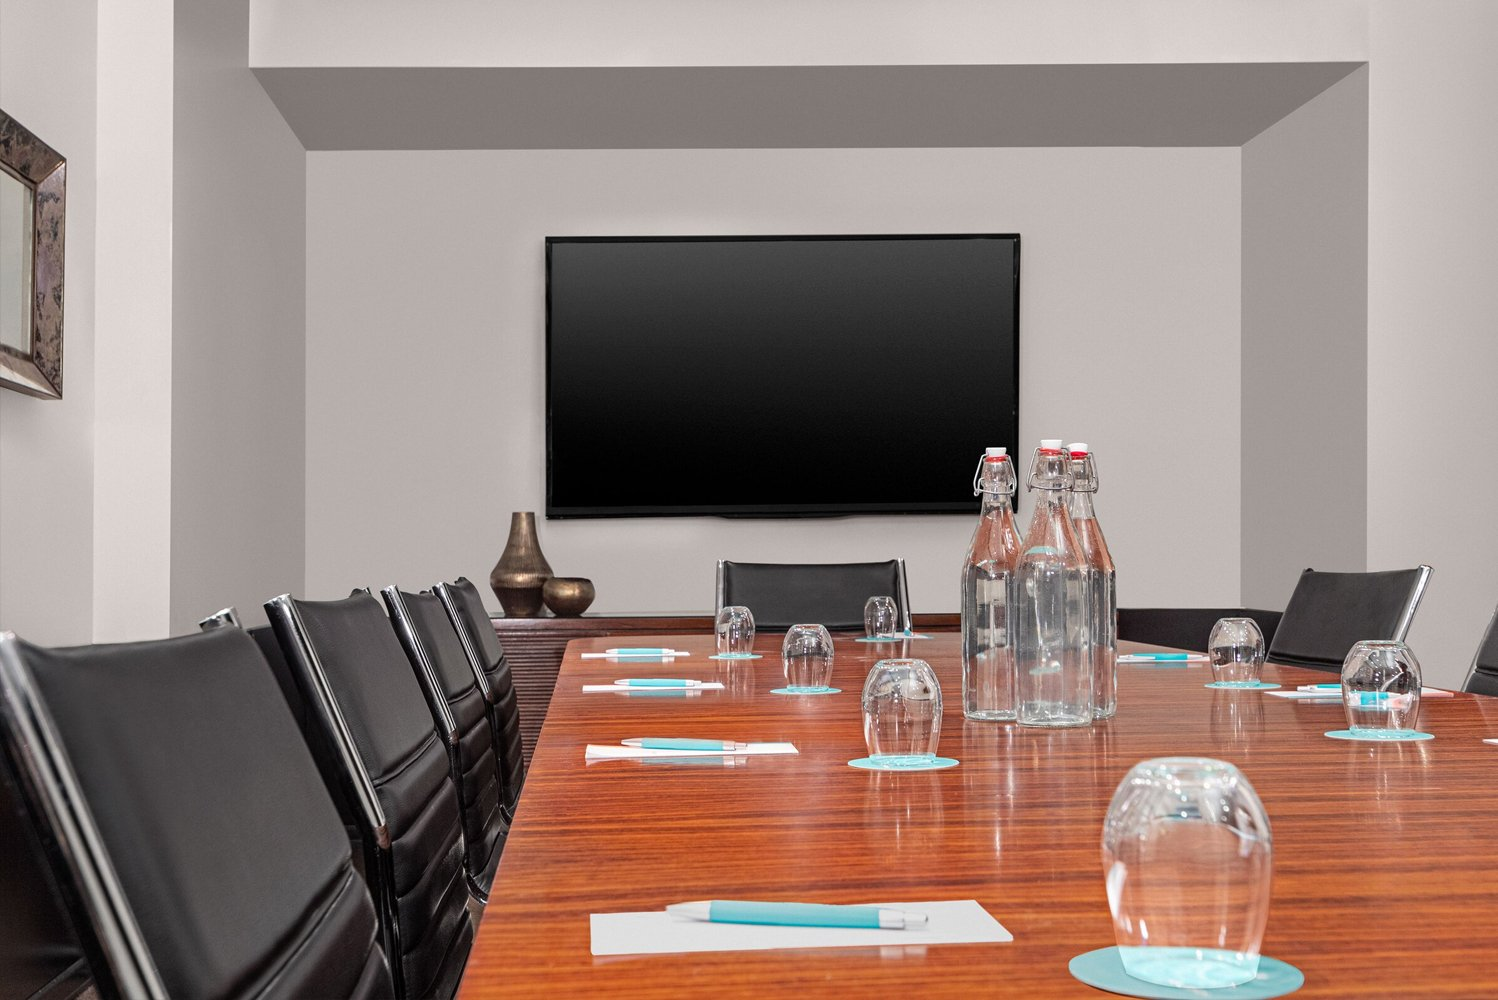 For events, the property has over 1,000 square feet of meeting room space.